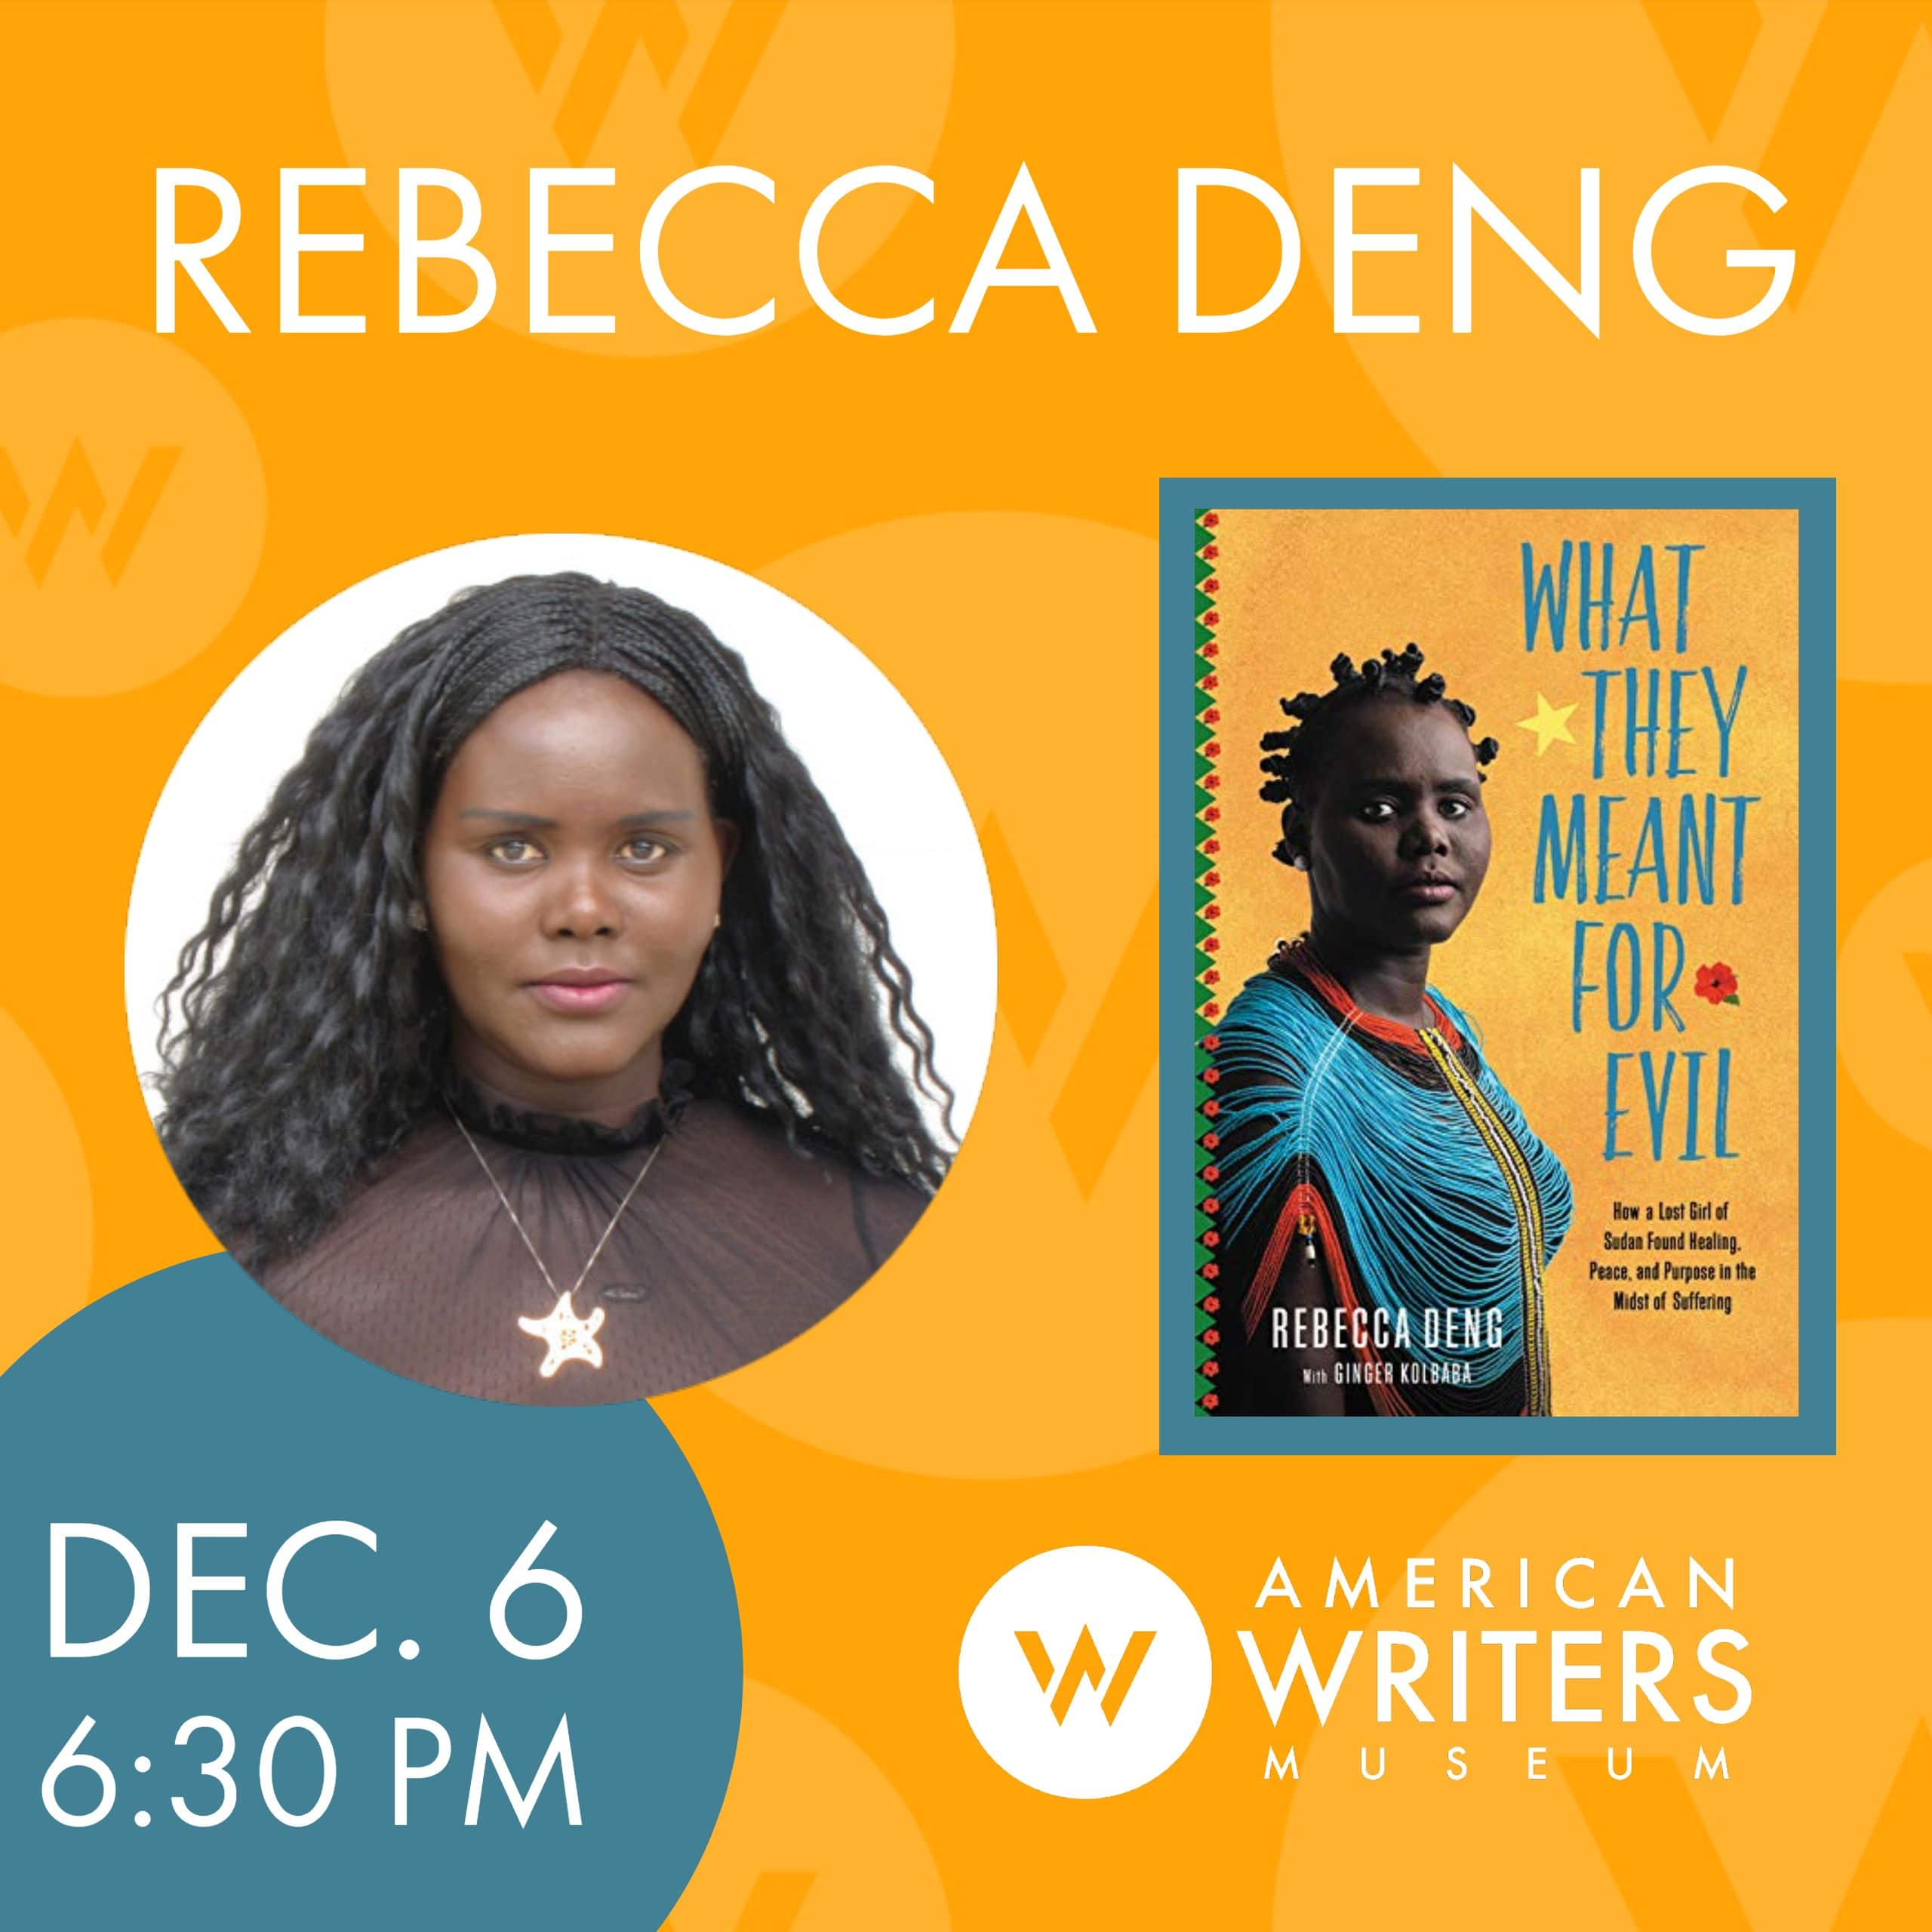 Rebecca Deng presents her new book What They Meant for Evil at the American Writers Museum in Chicago on December 6, 2019 at 6:30 pm as part of the programming for special exhibit My America: Immigrant and Refugee Writers Today